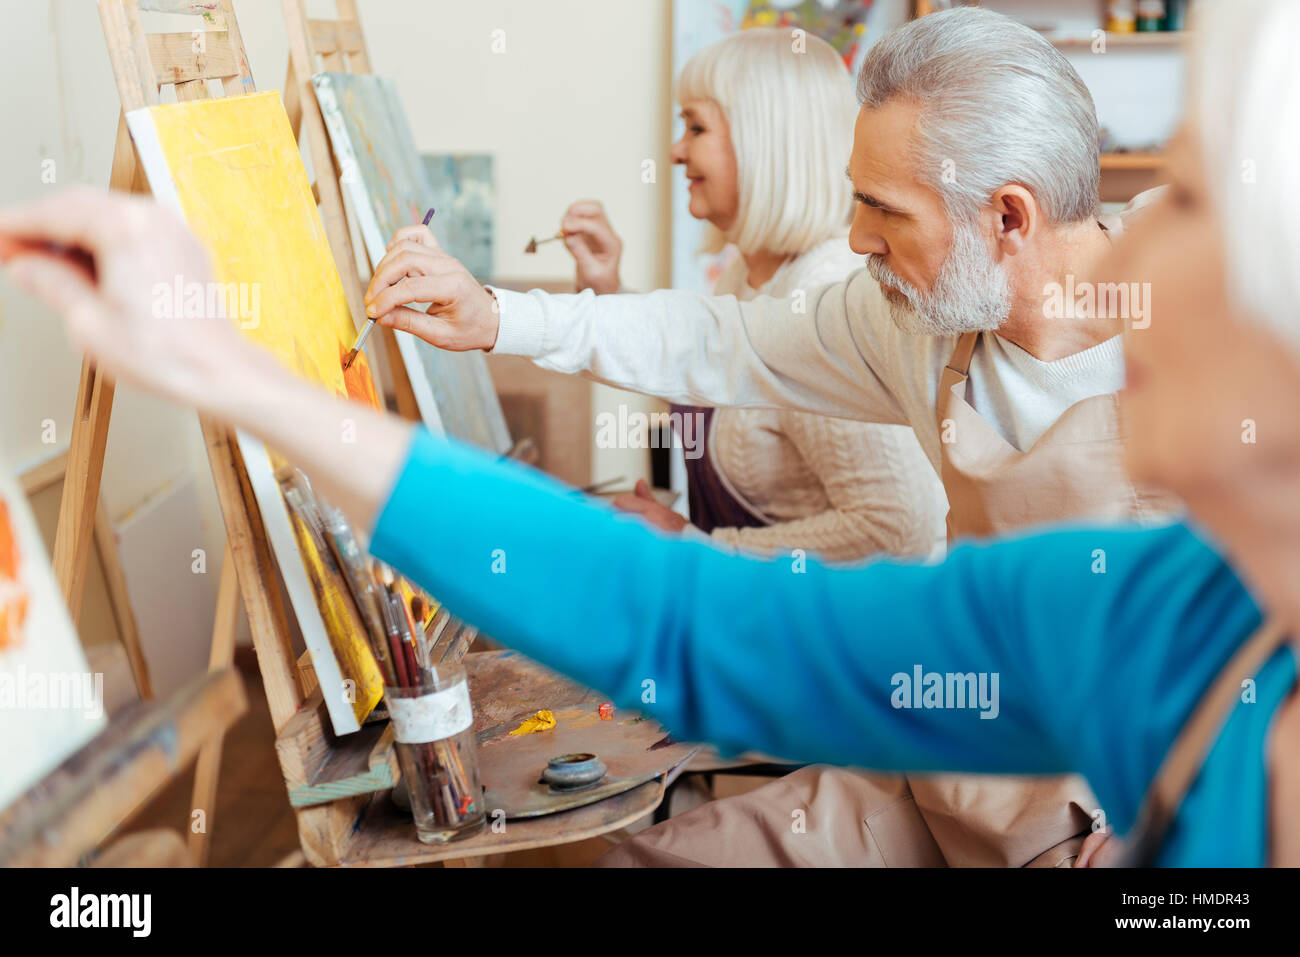 Three concentrated artists spending time in painting studio - Stock Image